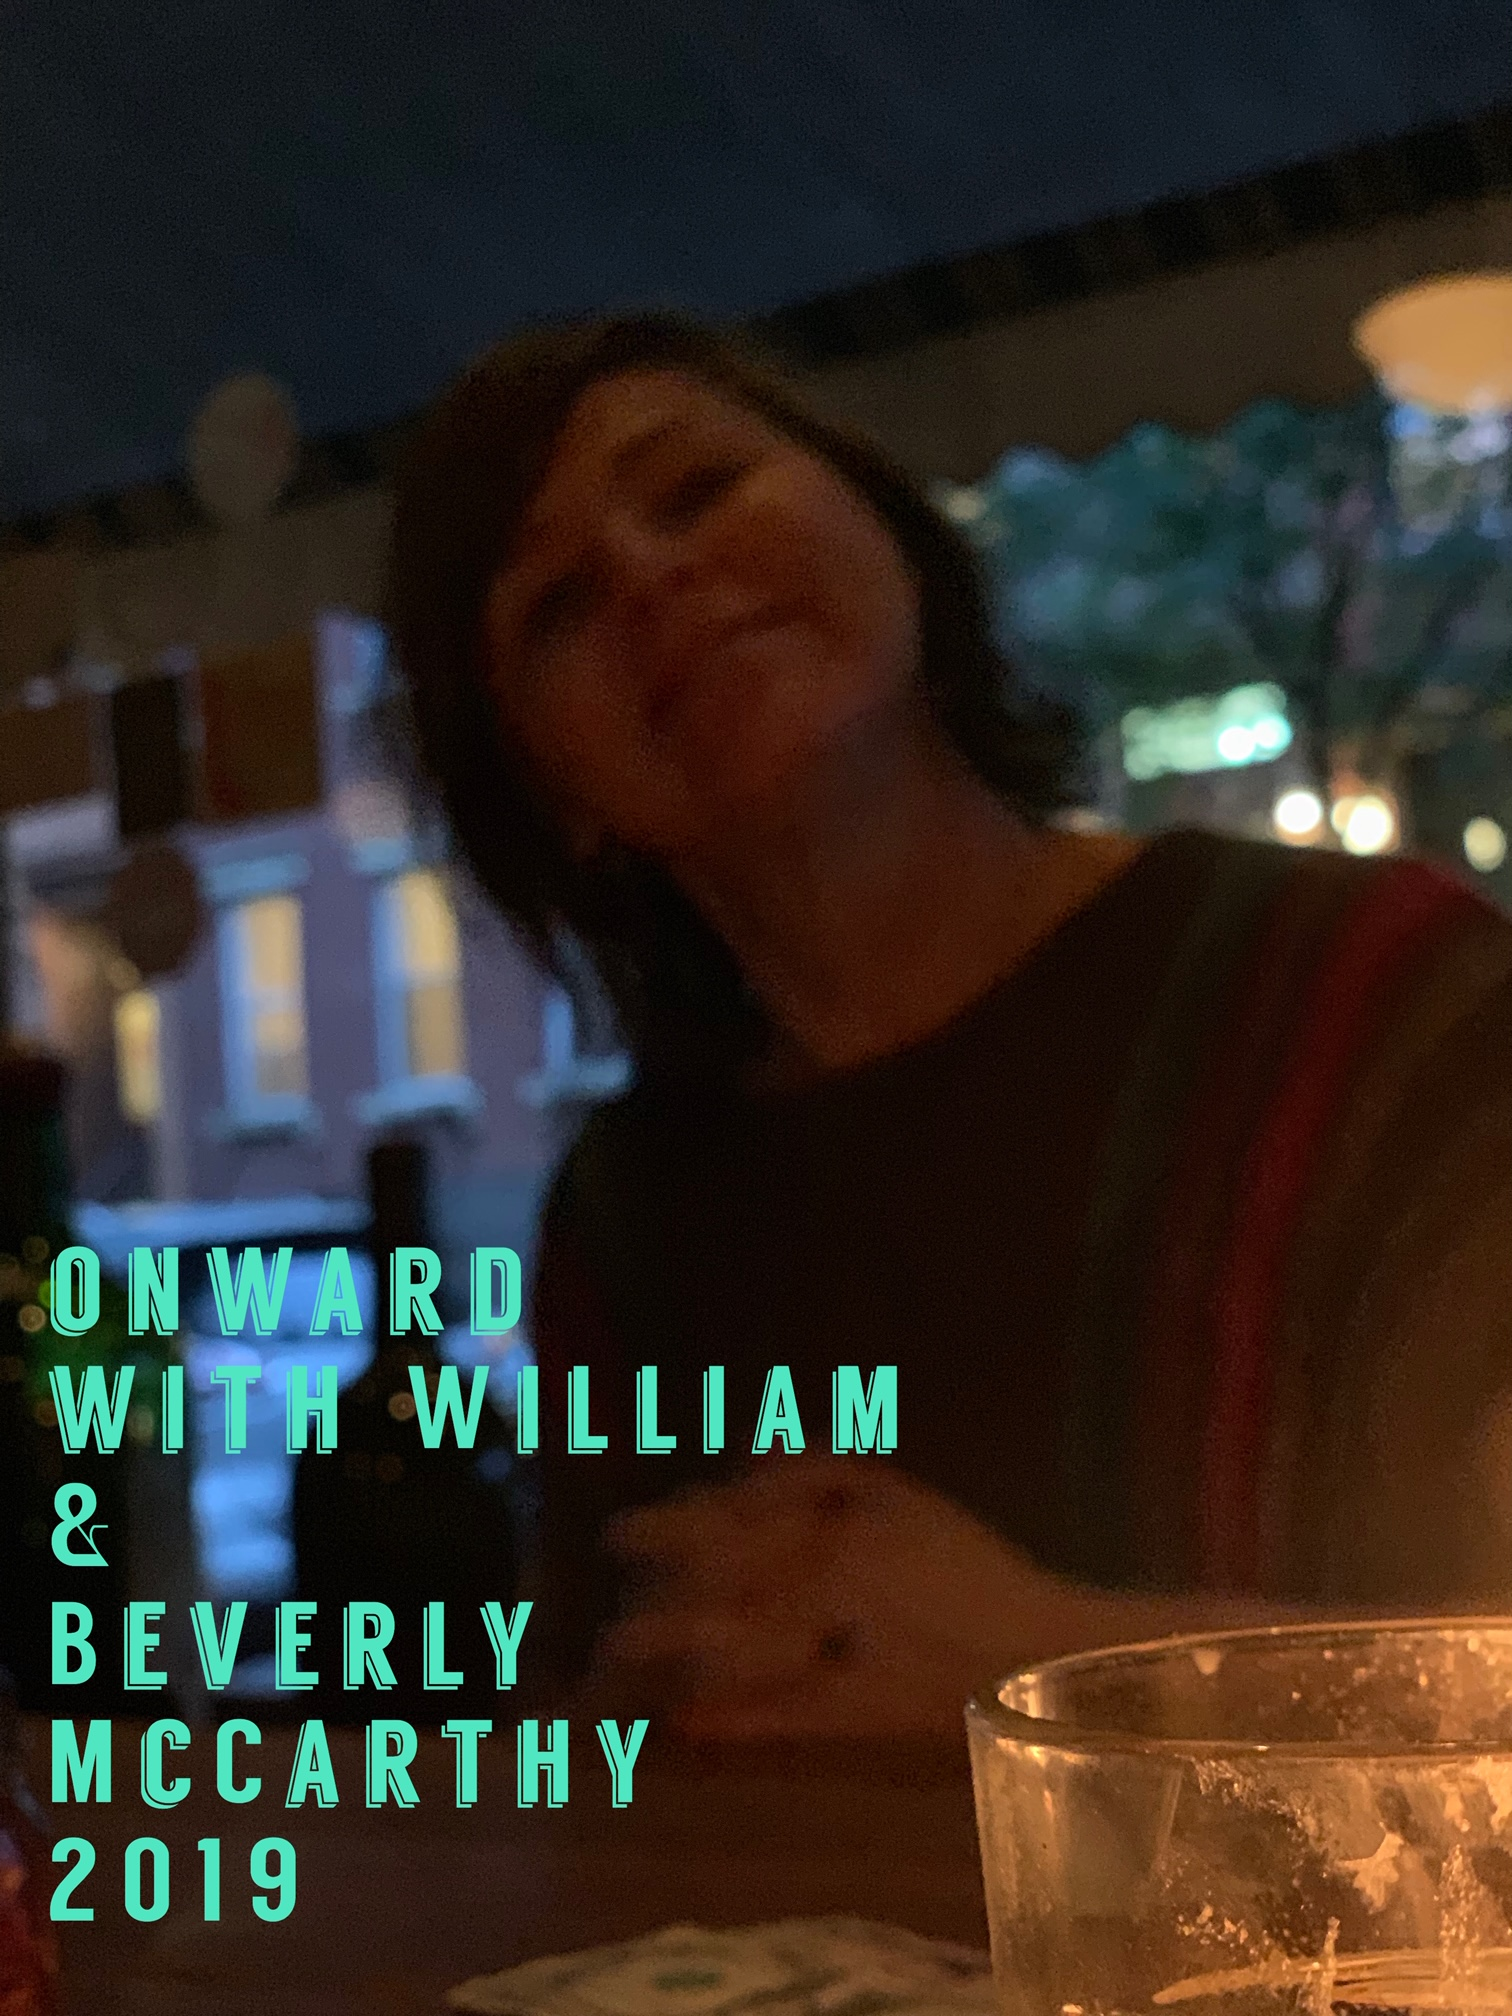 Onward with William and Beverly McCarthy live from Redhook Brooklyn!